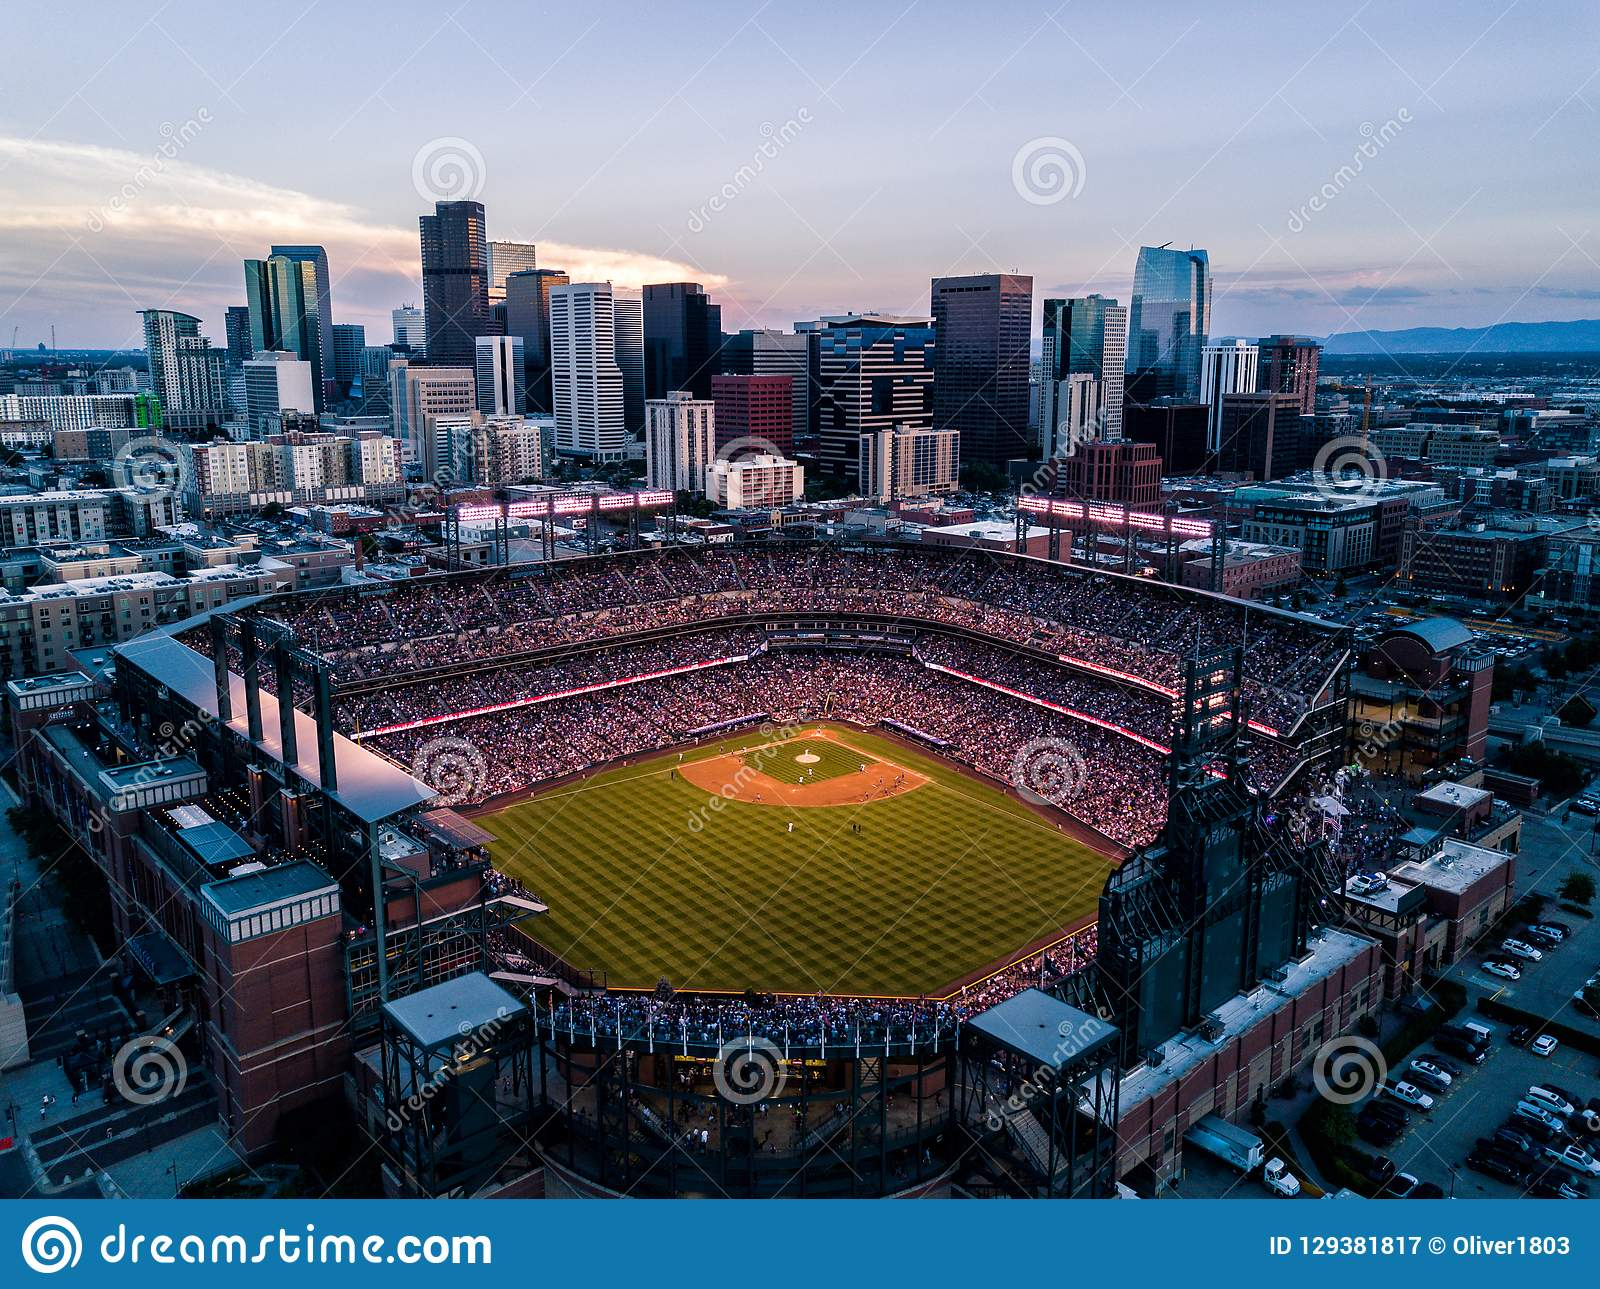 Beautiful drone photo of Denver Colorado at sunset